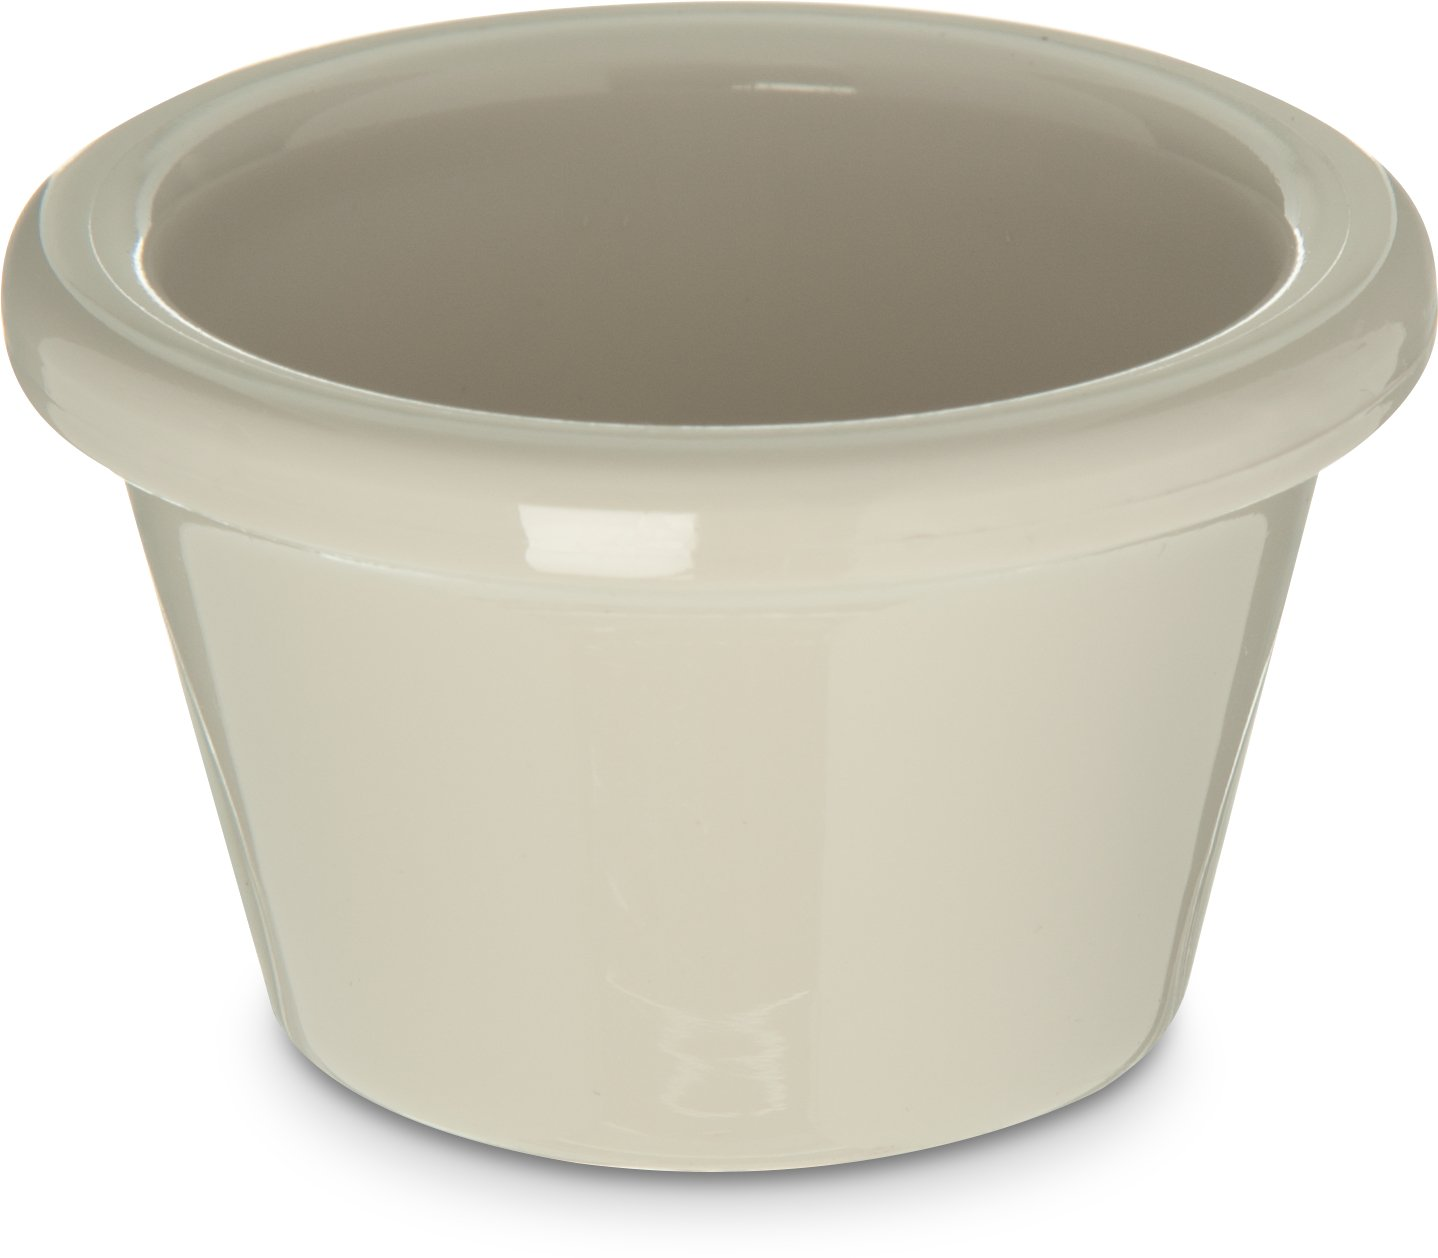 Carlisle 4312142 SAN Smooth Ramekin, 1.5-oz. Capacity, 1.43 x 2.49'', Bone (Case of 48)